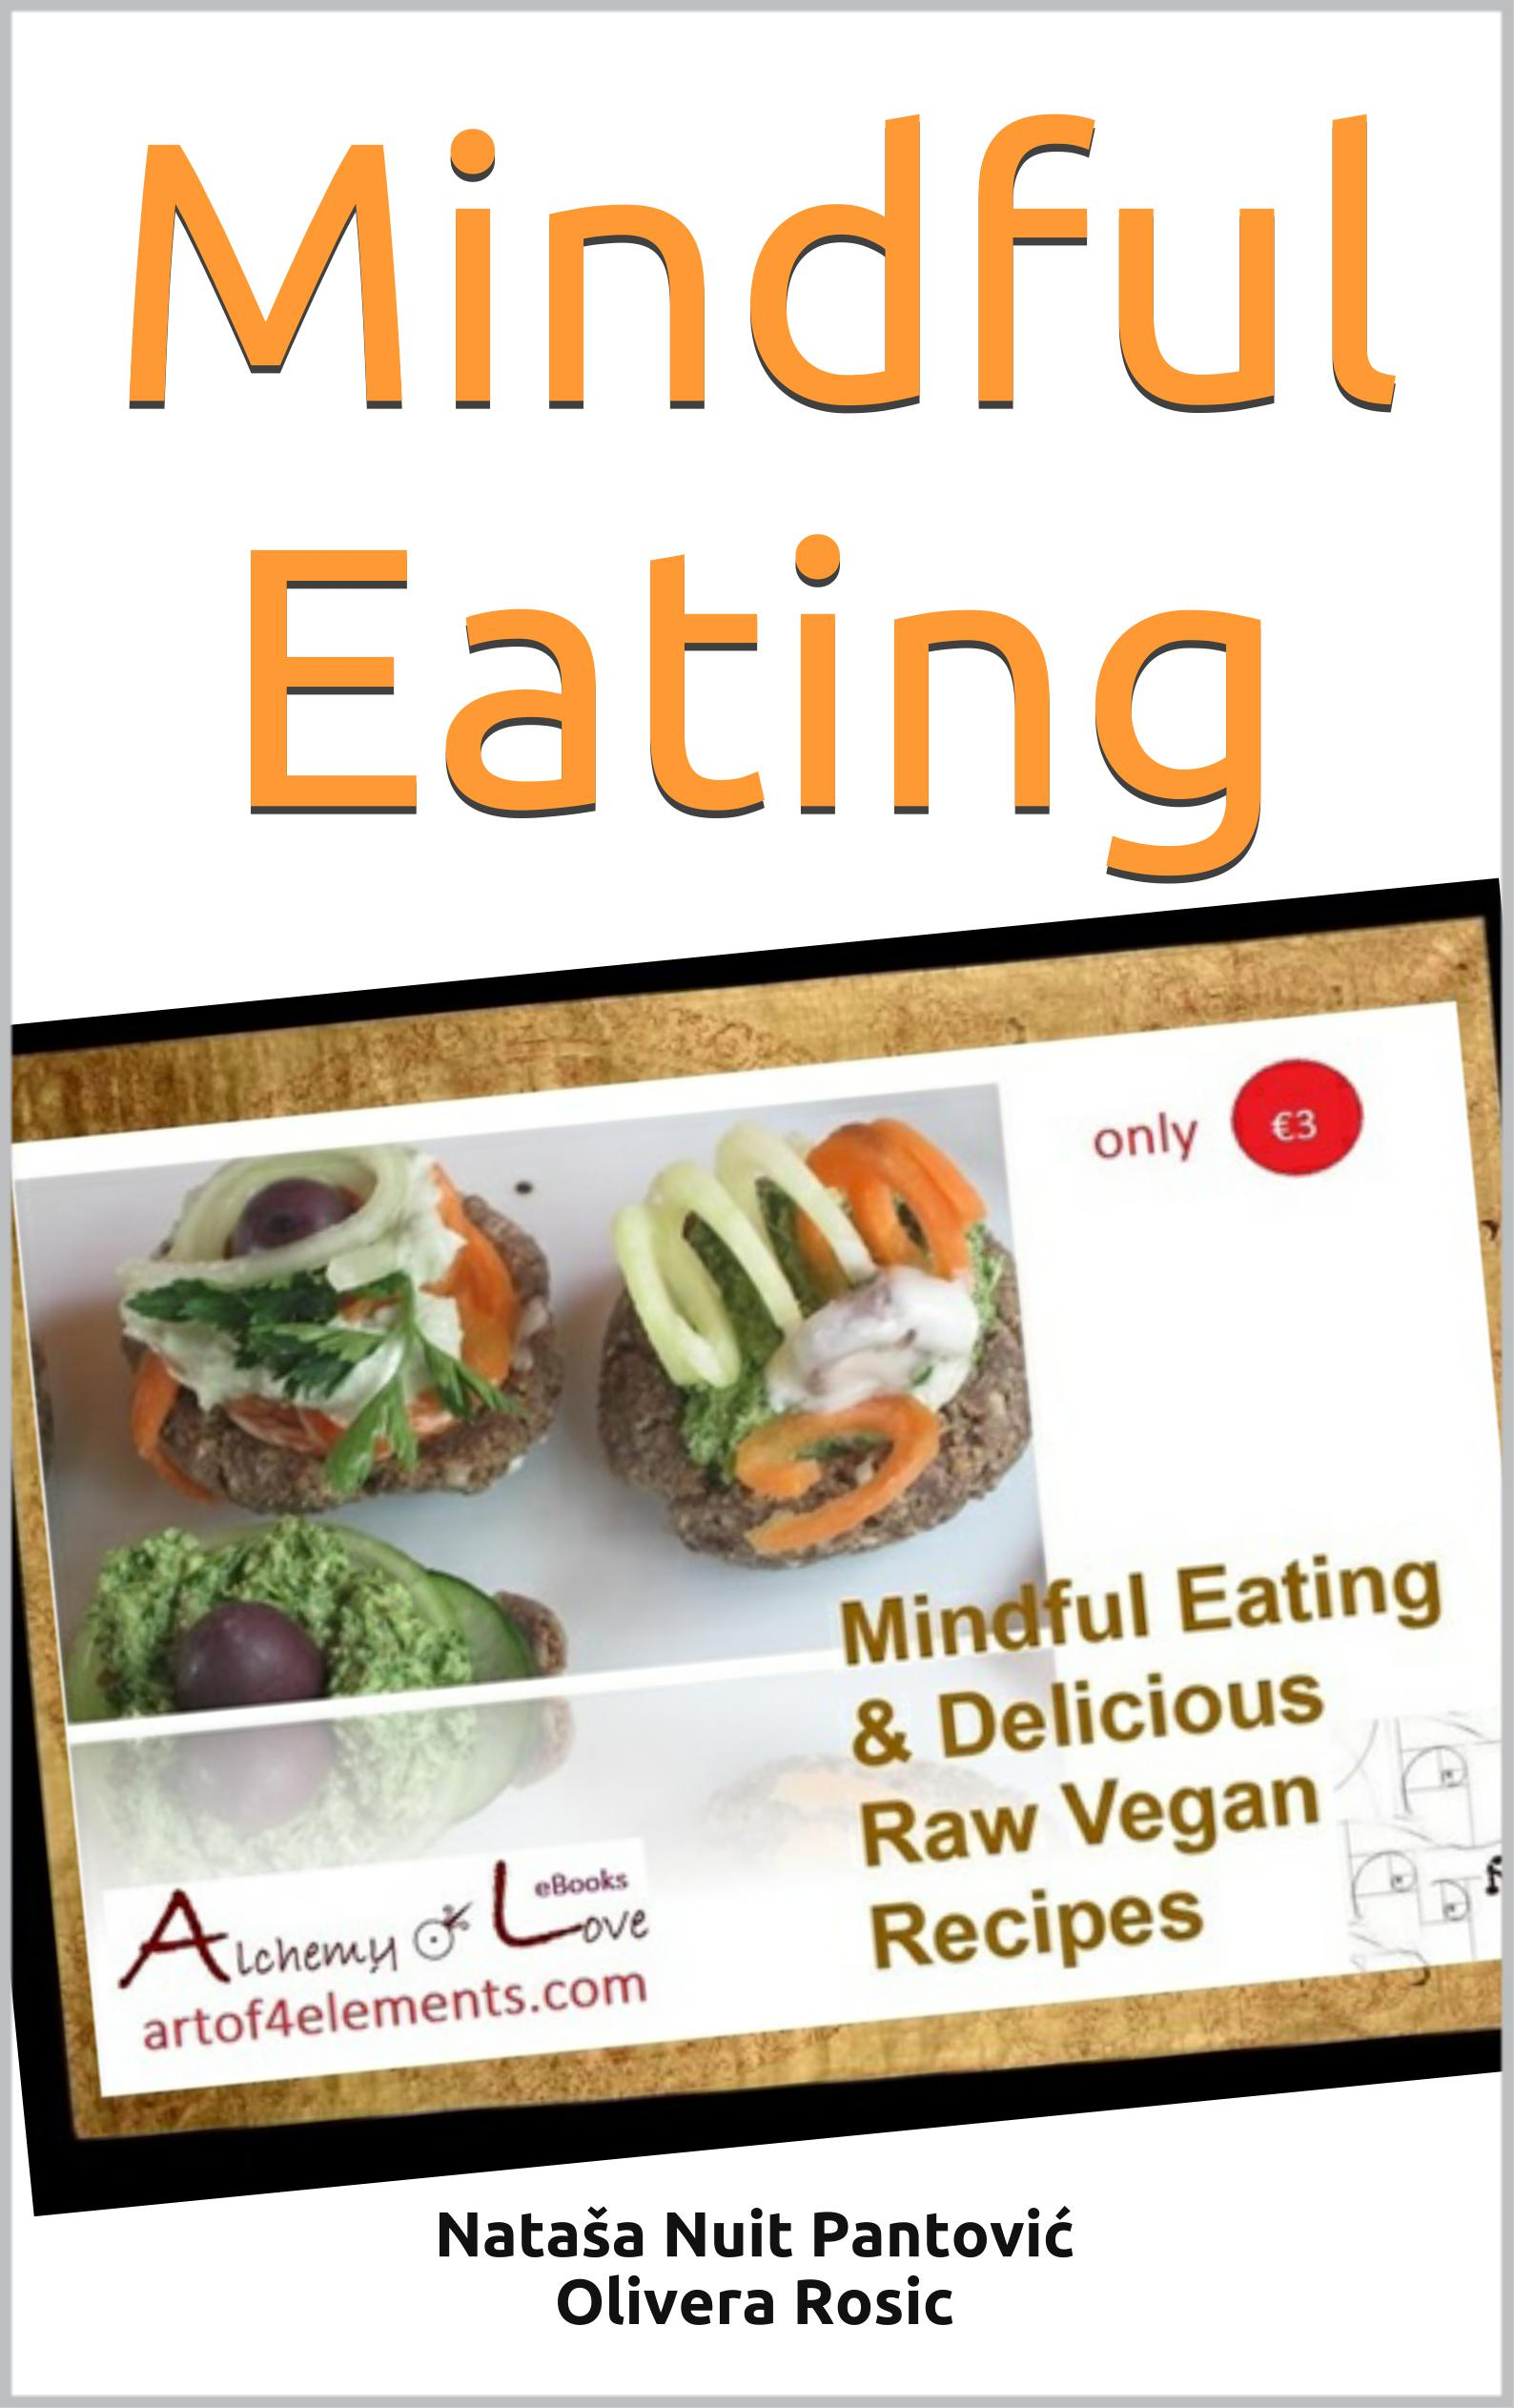 Mindful Eating with Raw Vegan Recipes